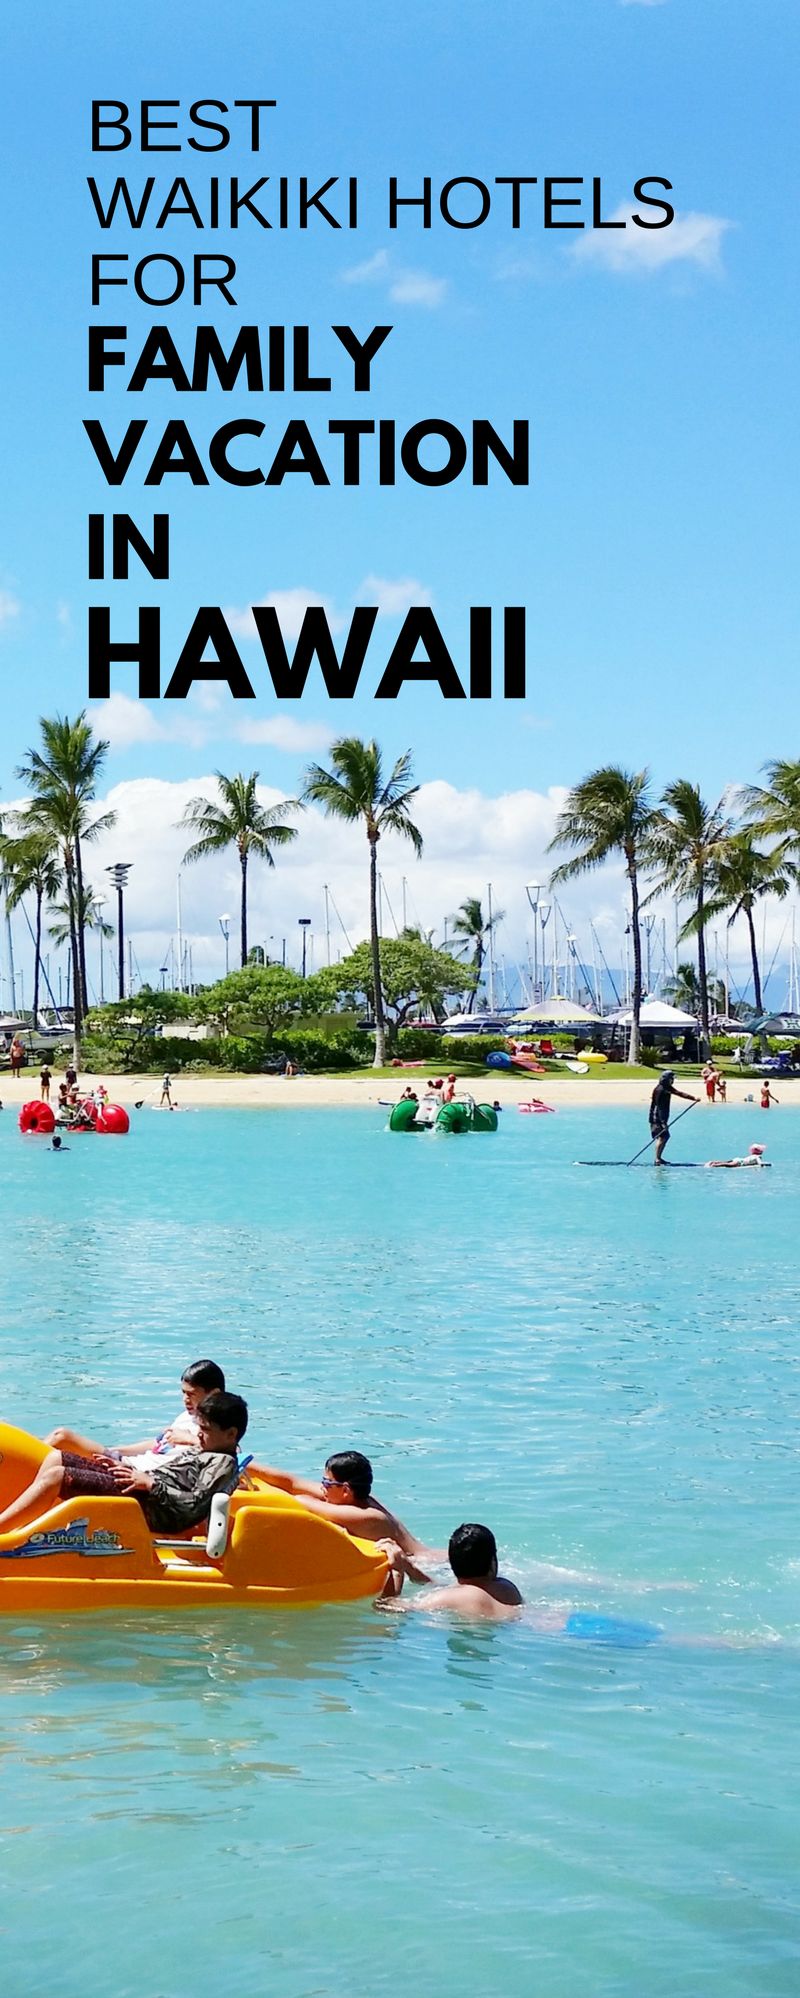 family vacation ideas for hawaii trip with waikiki beach hotels